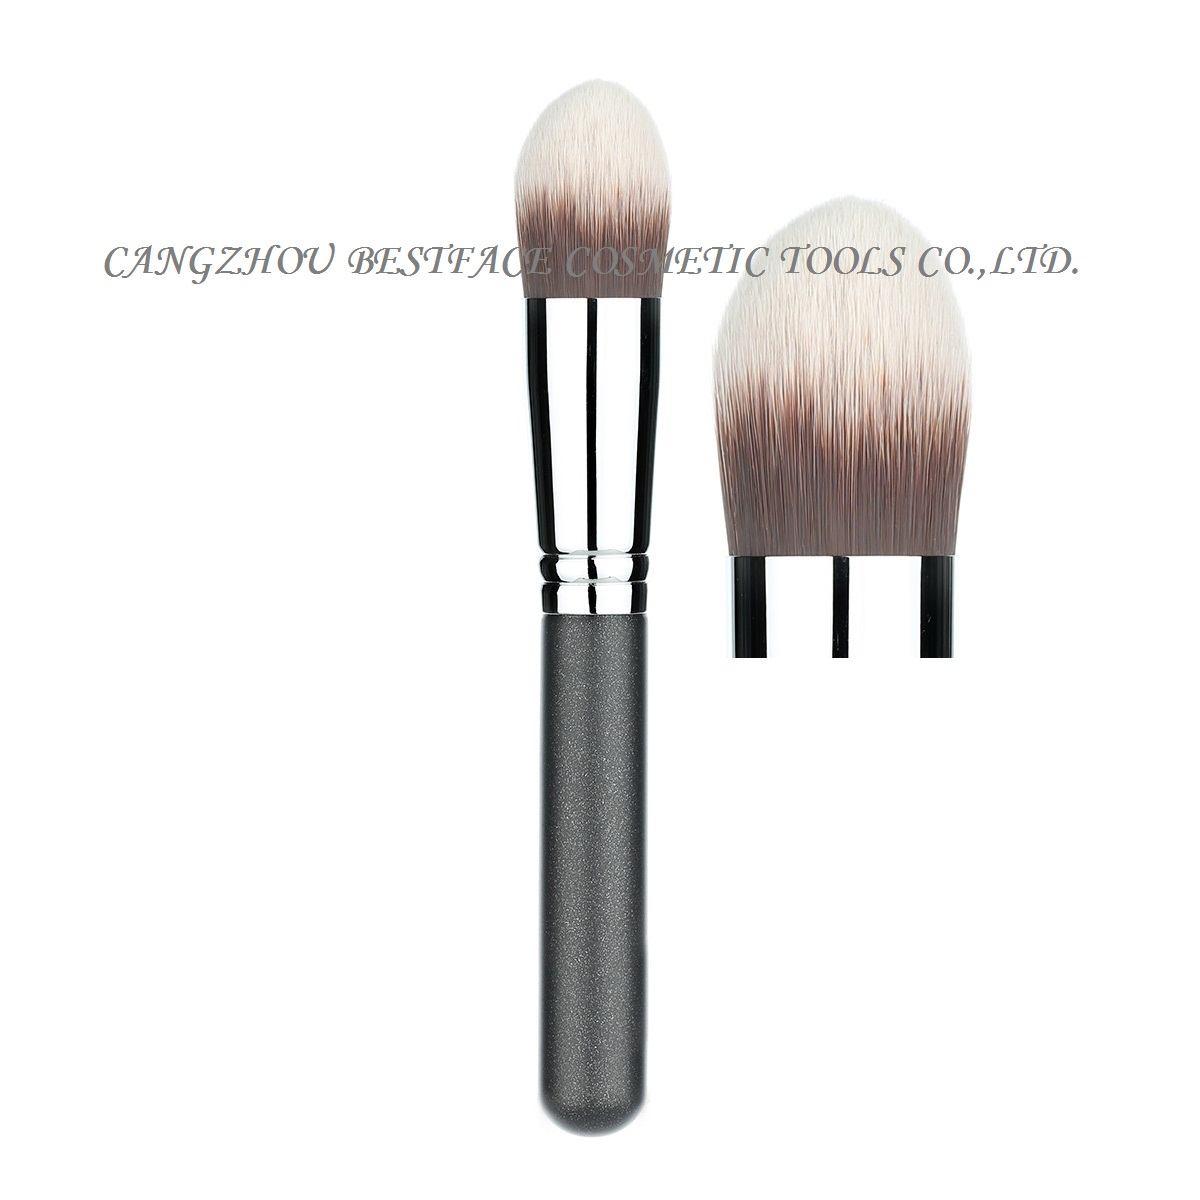 Makeup Brushes manufacturer from China